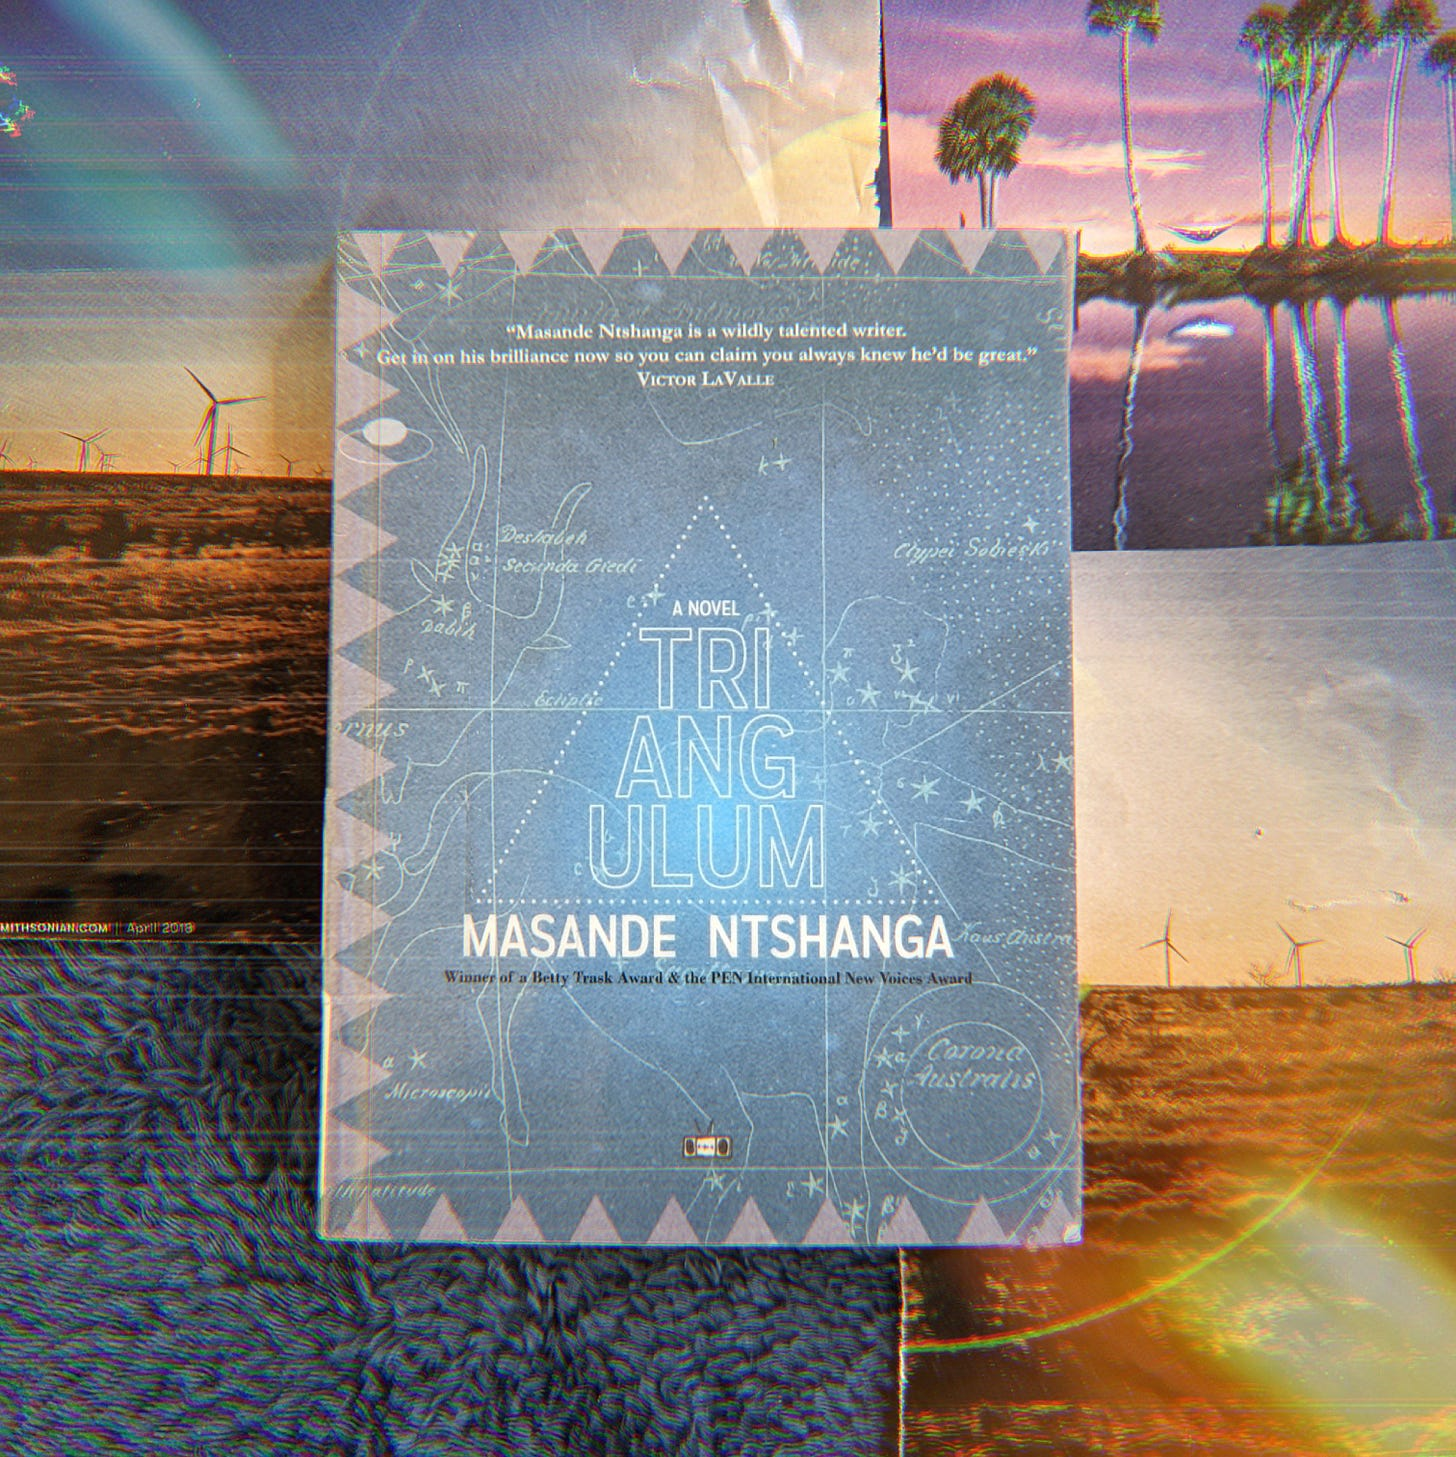 Blue book on top of magazine cutouts of landscapes. The book is Triangulum by Masande Ntshanga.